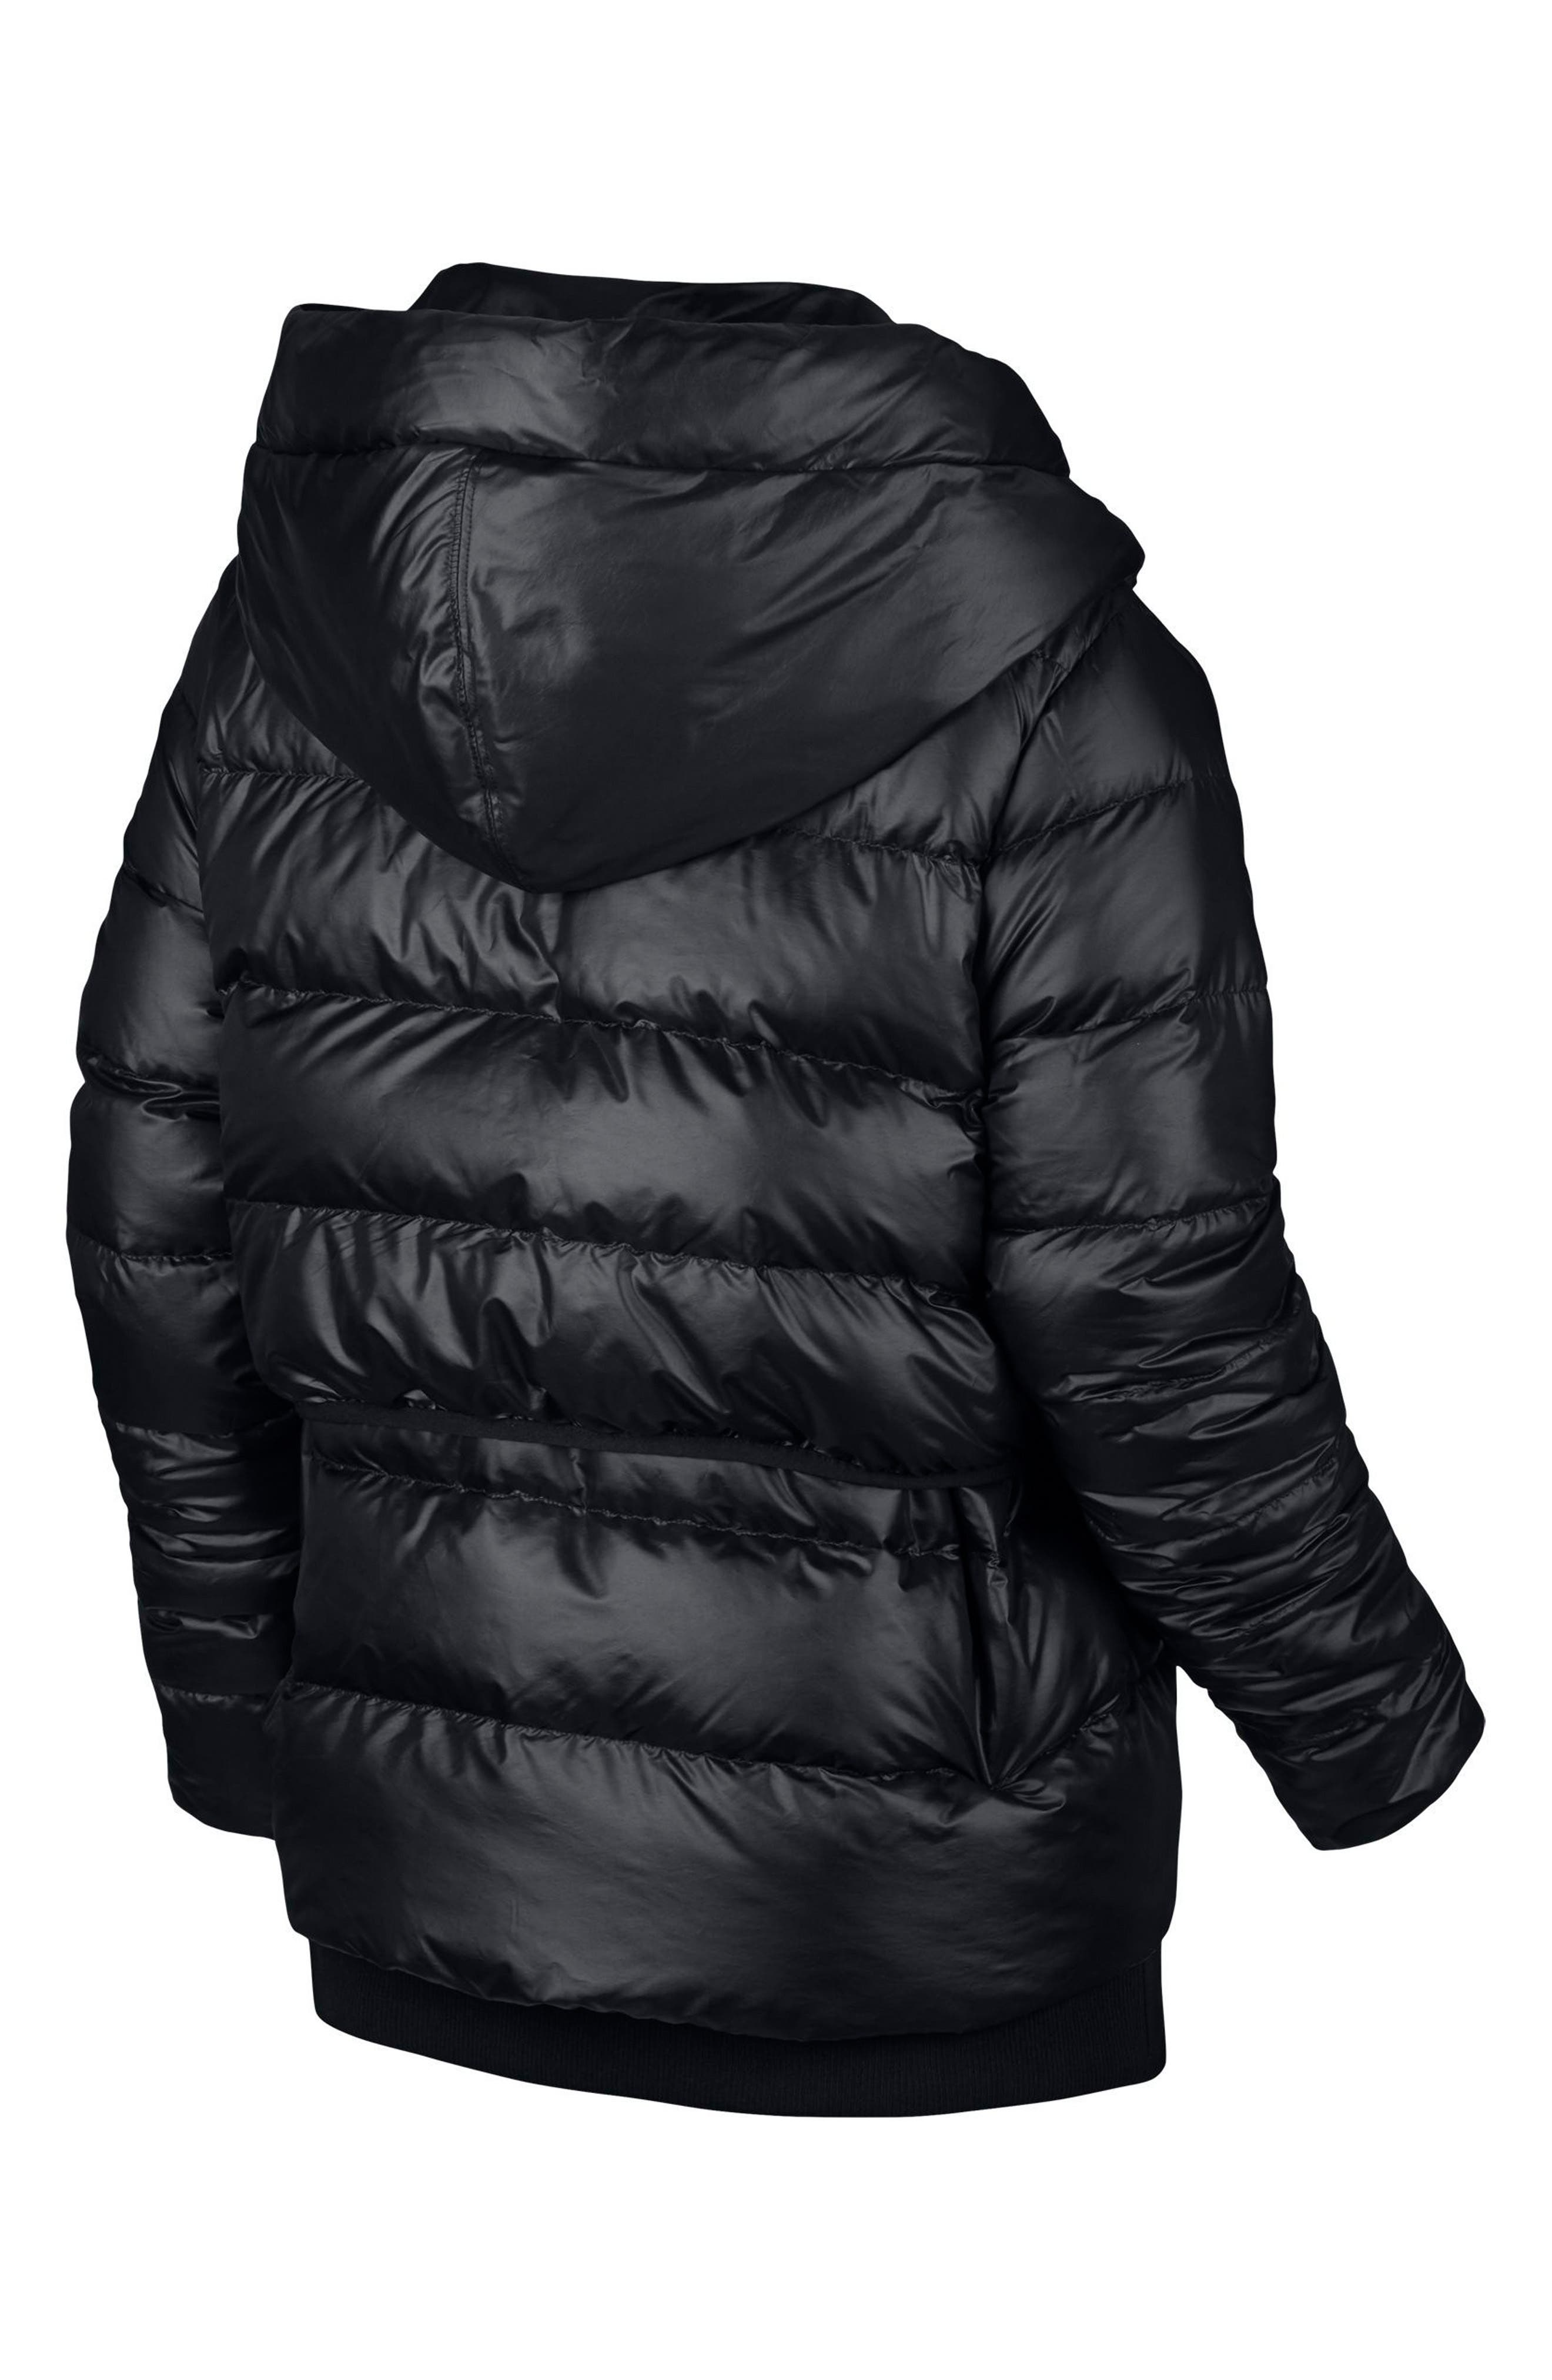 Sportswear Women's Hooded Down Jacket,                             Alternate thumbnail 6, color,                             010